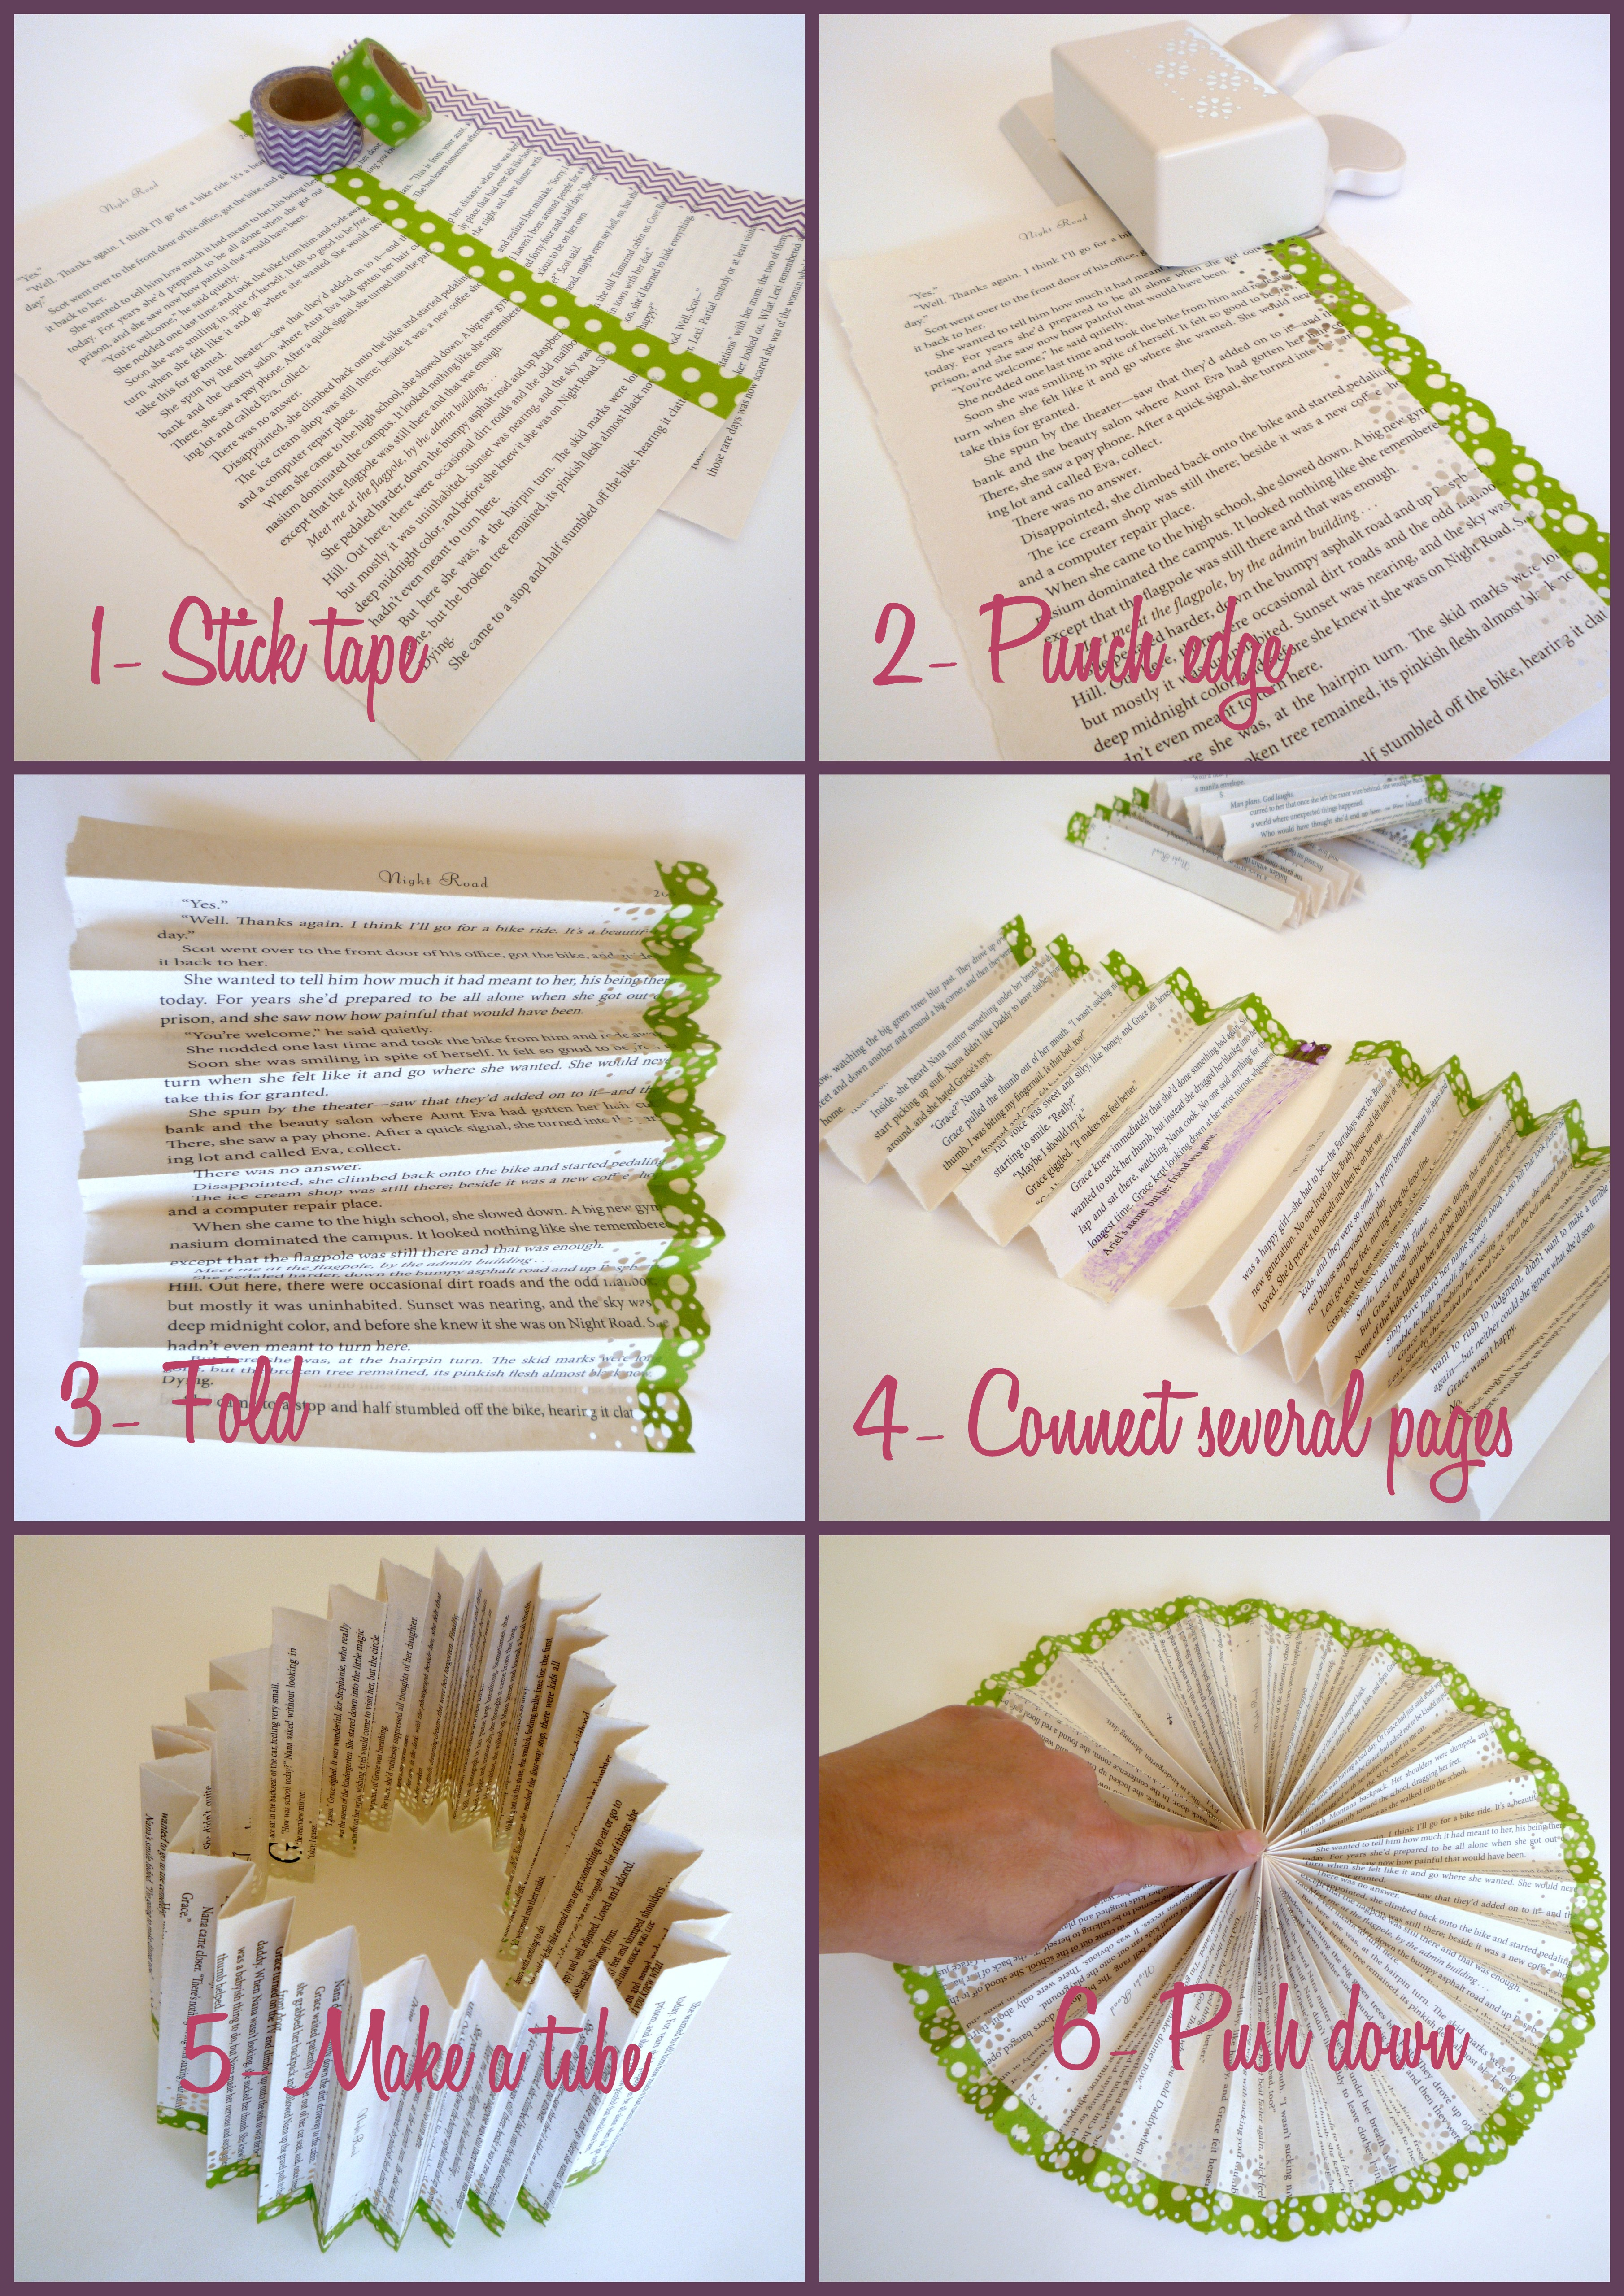 how to make a paper fan step by step. paper fans-001 2 pin it how to make a fan step by